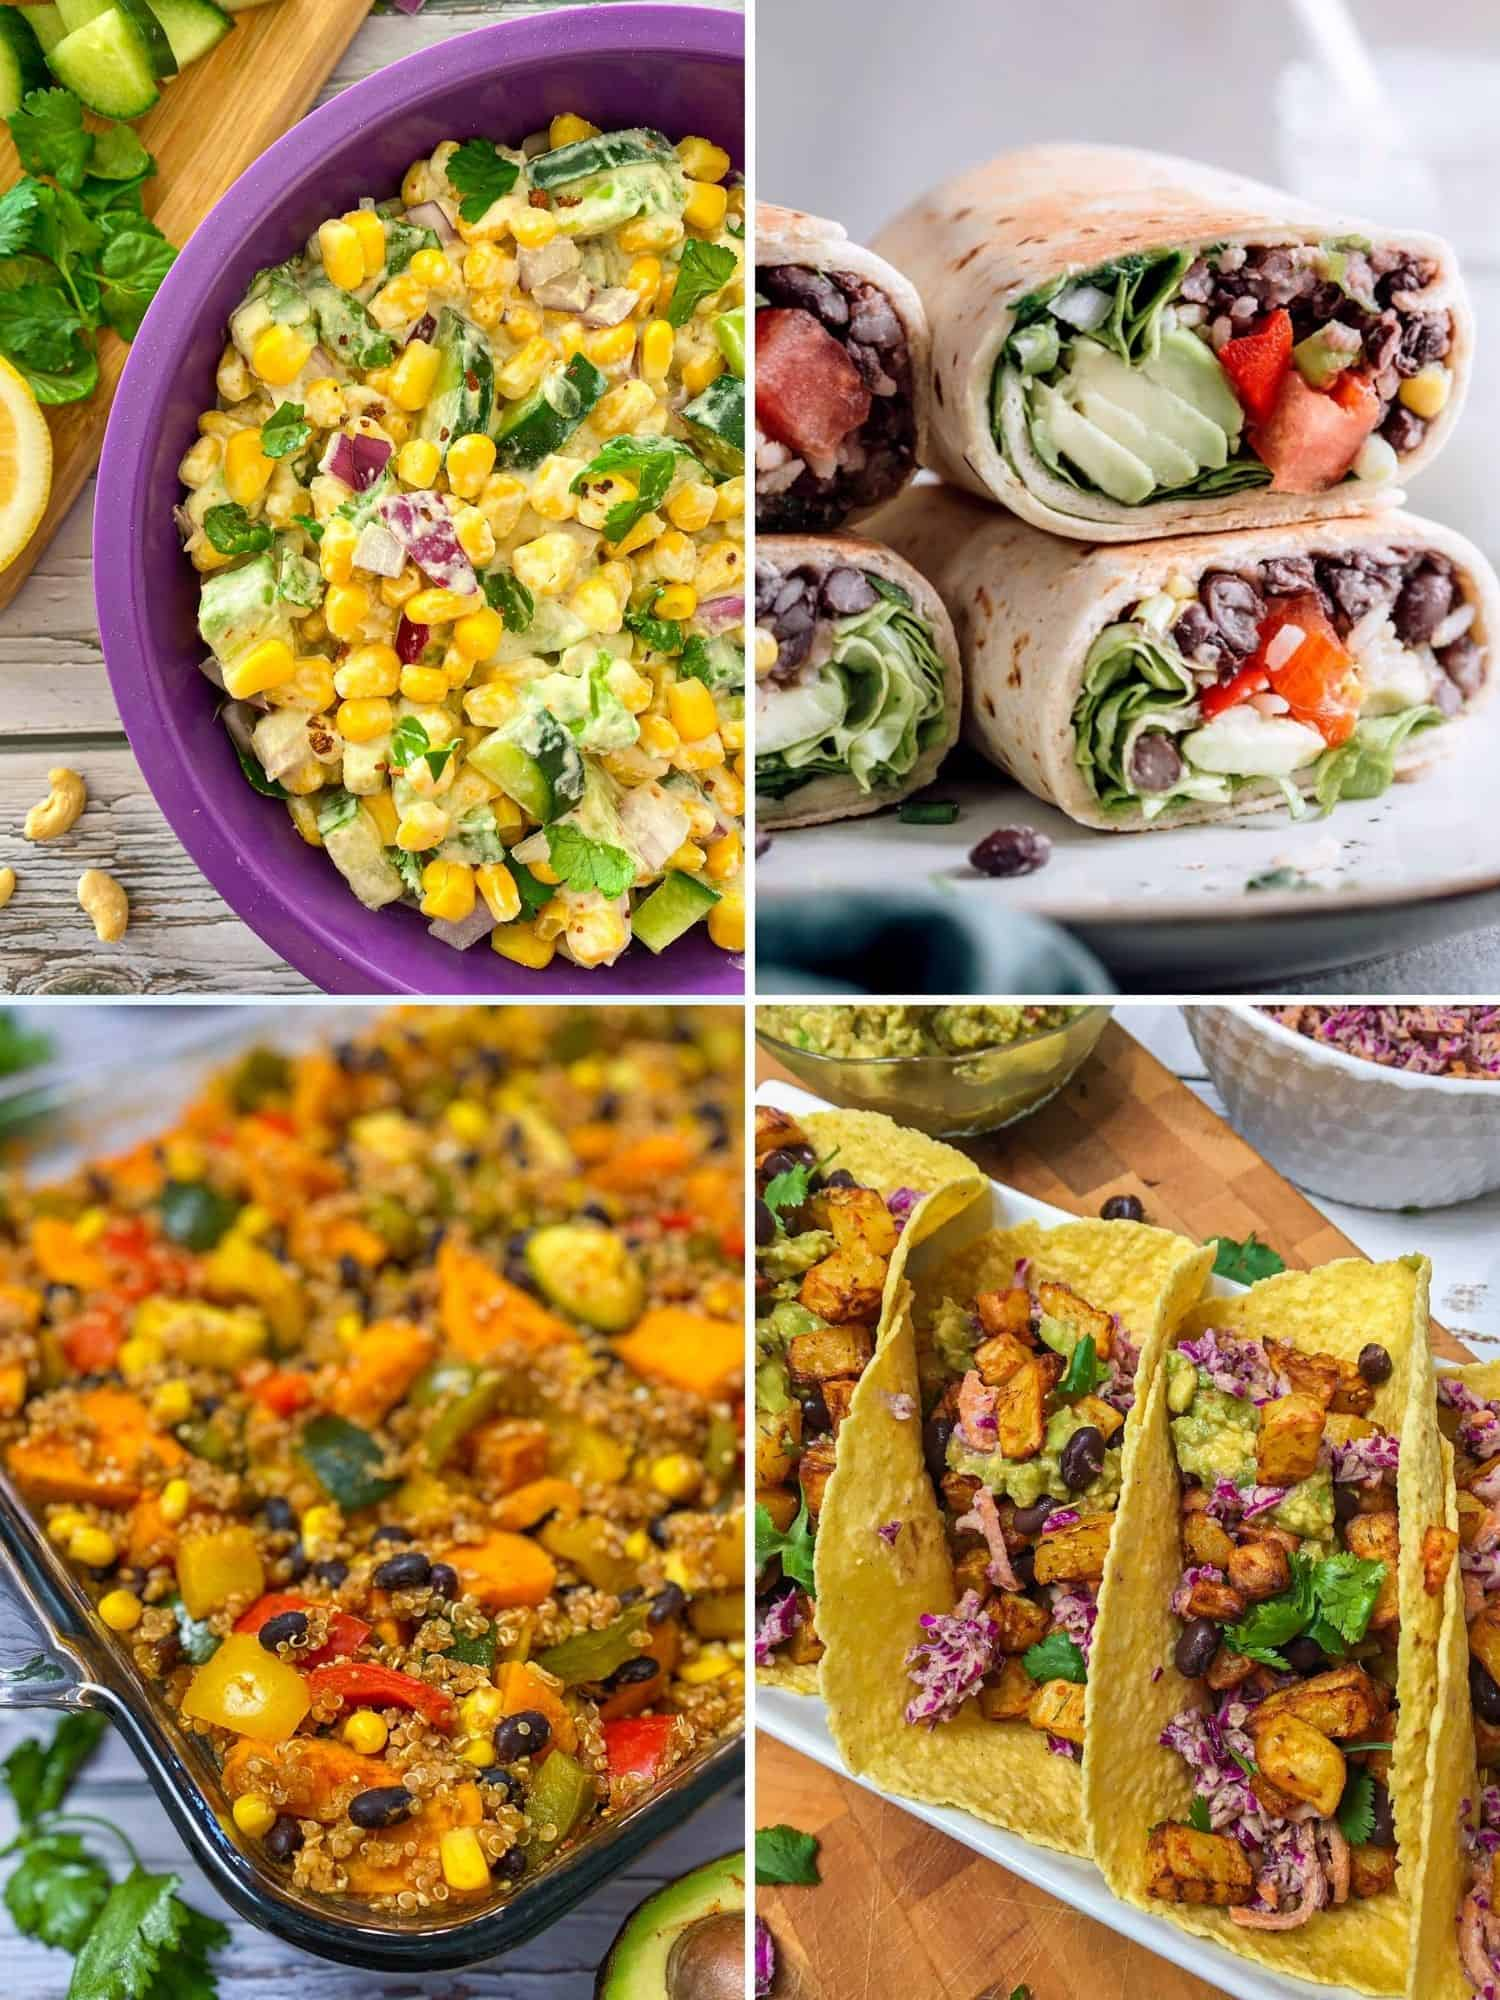 Collage of Mexican dishes: elote salad, burritos, enchilada casserole and tacos.